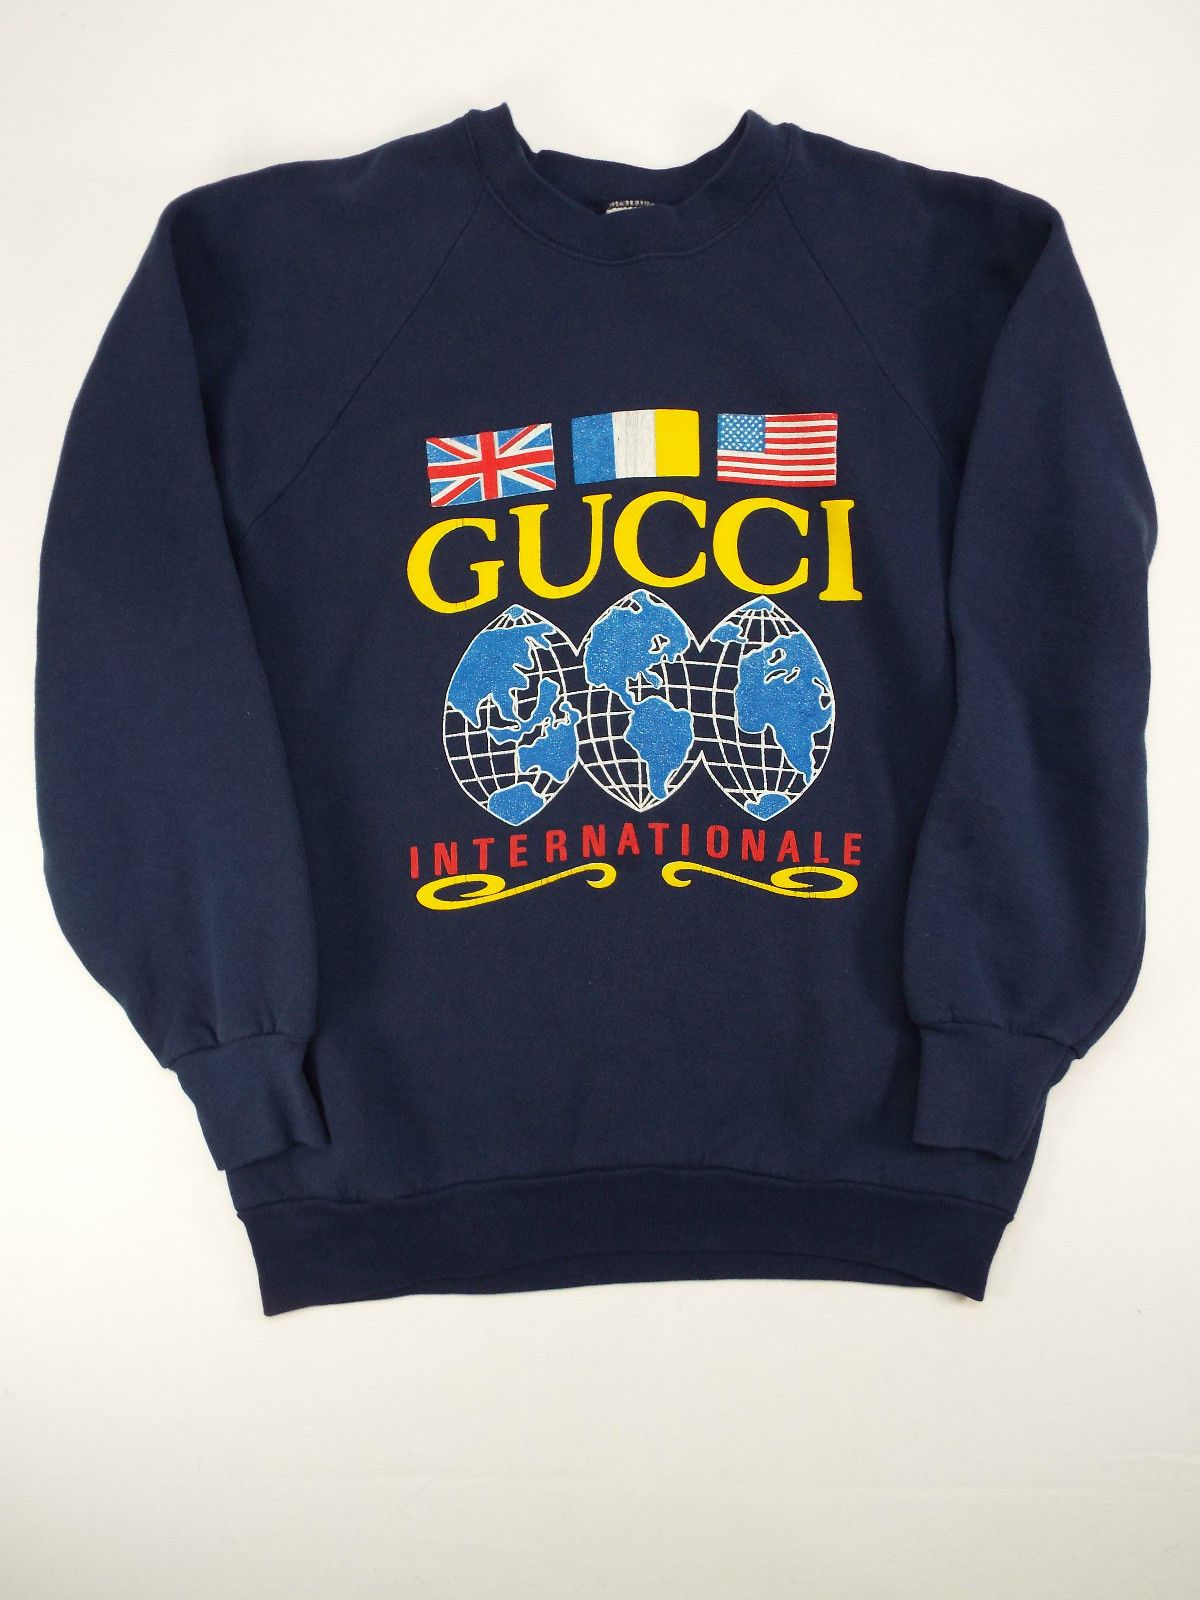 3ee131d5e5 Vintage GUCCI Internationale Logo Sweatshirt 80s Hip Hop Old School L M  Navy in Clothing